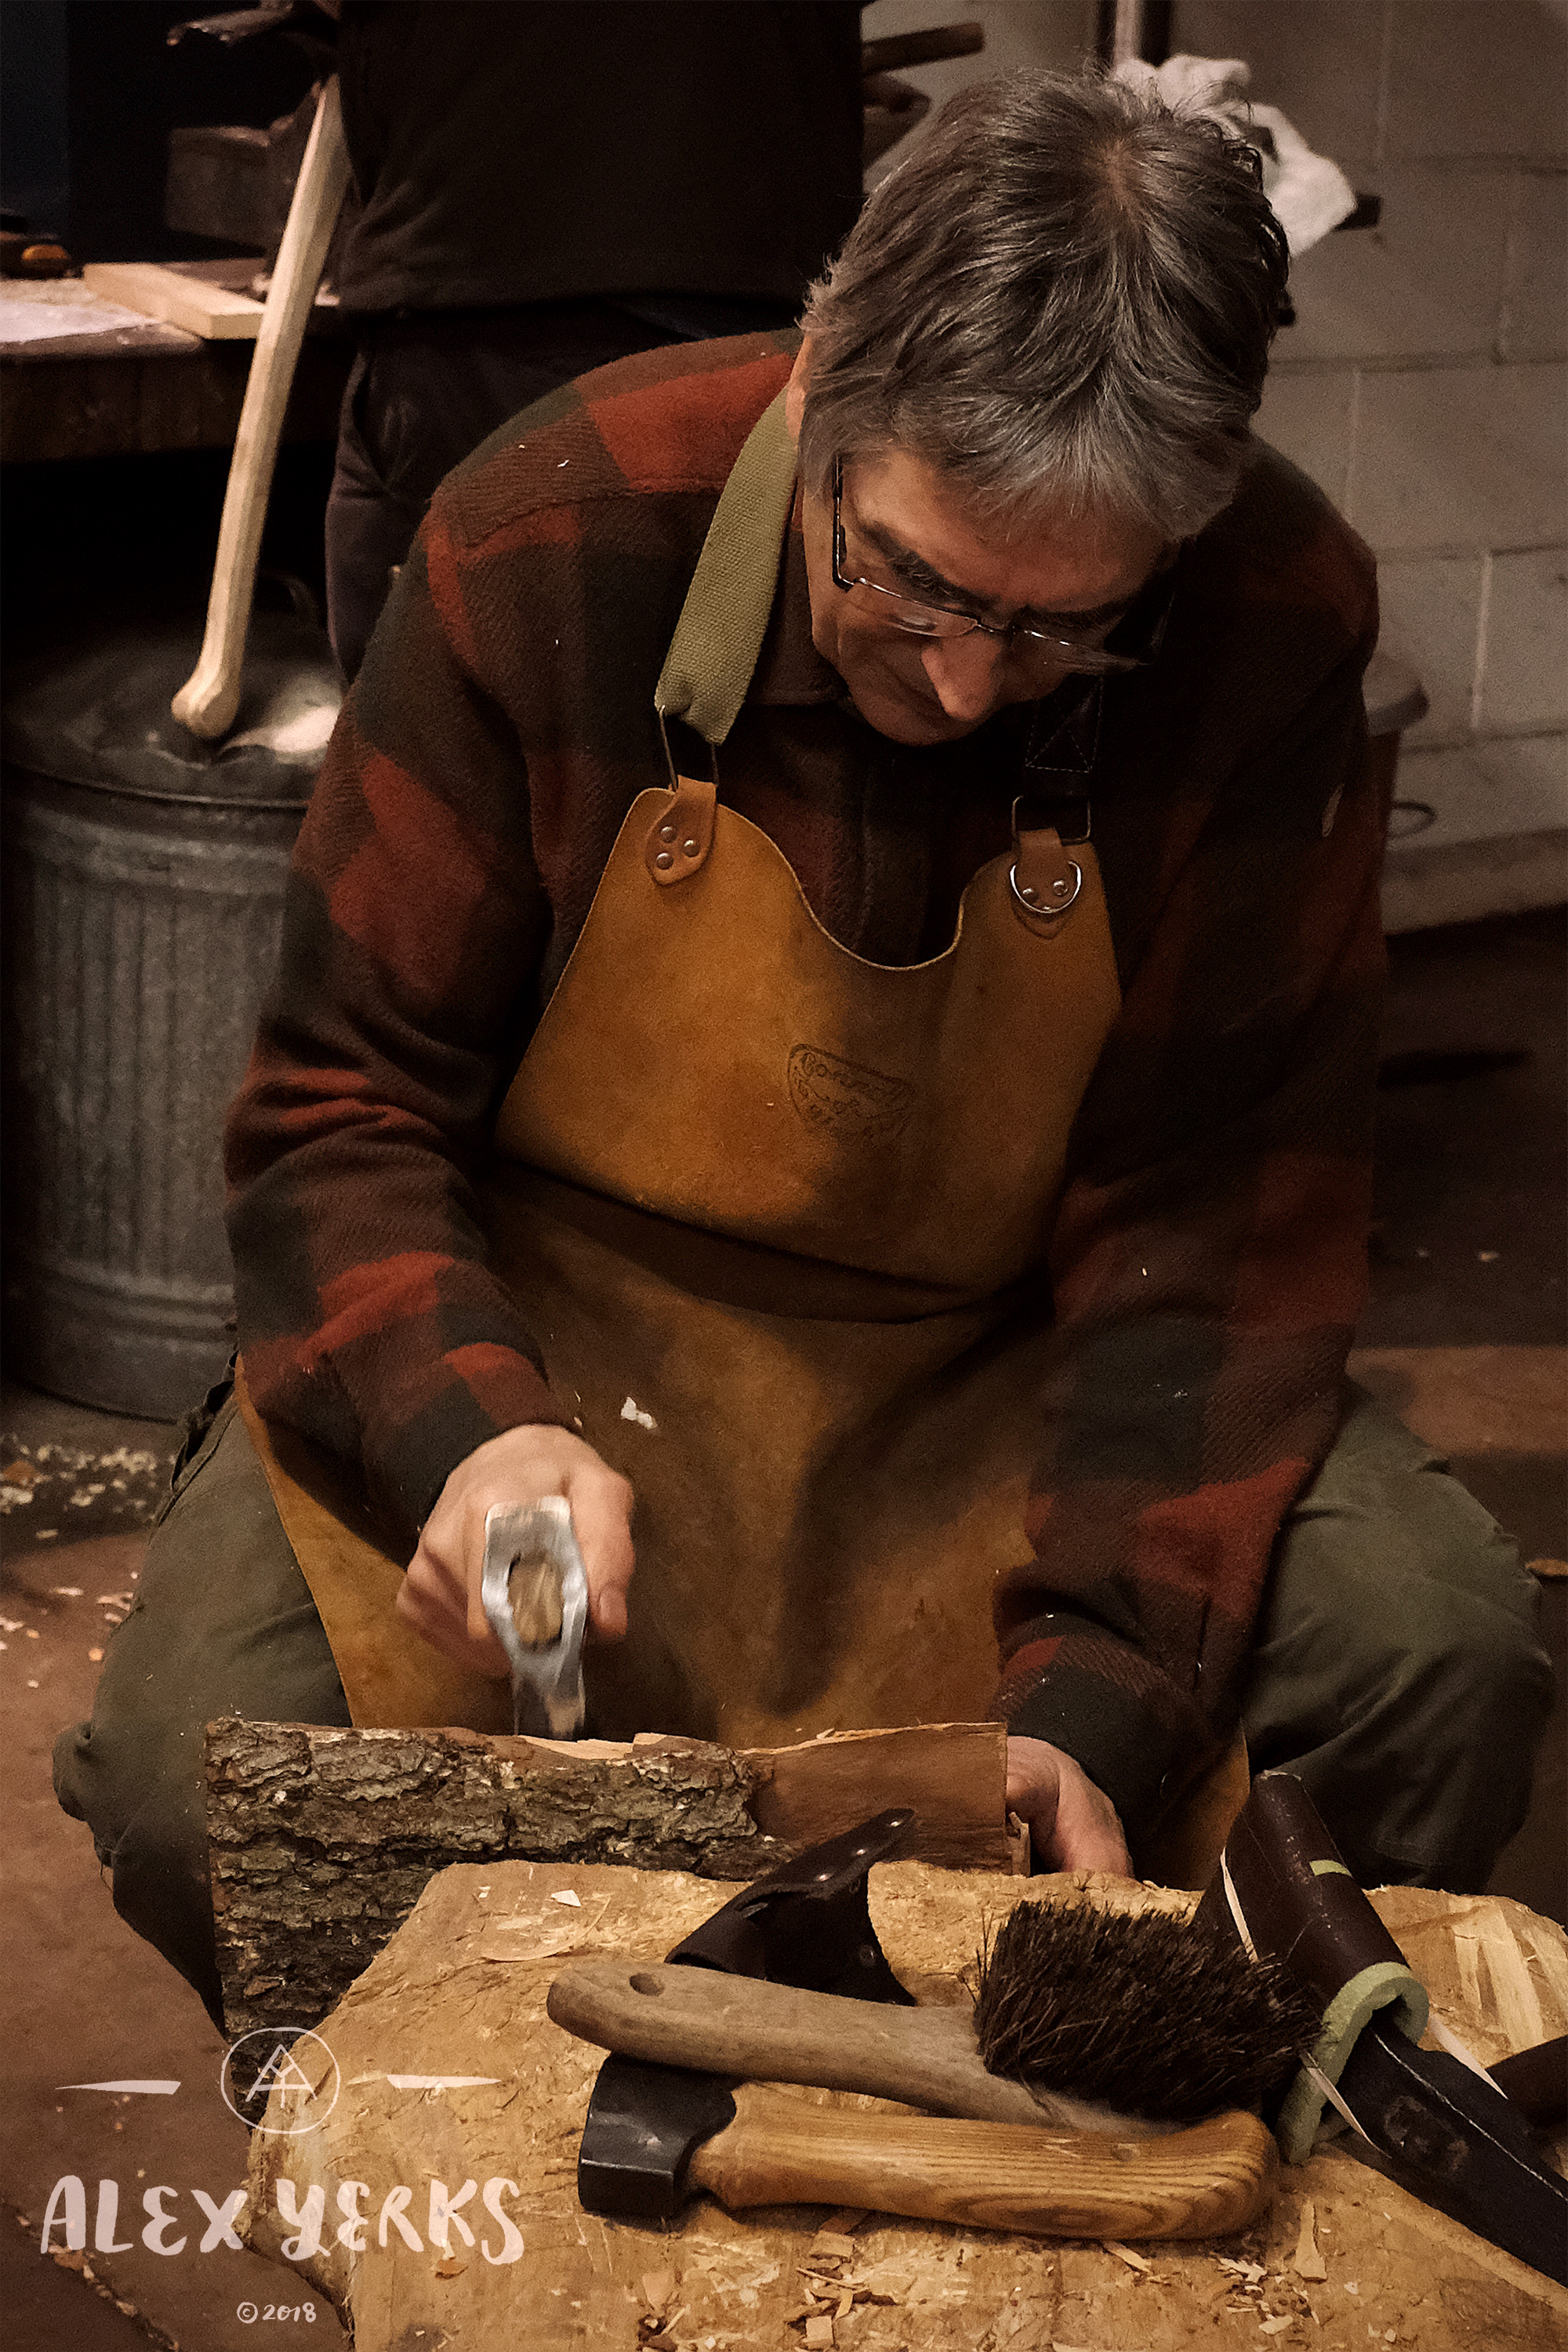 It's interesting to watch other carvers work methodically. Alastair has been carving for a long time and knows precisely what he's doing. You can learn a lot by sitting quietly watching one another.